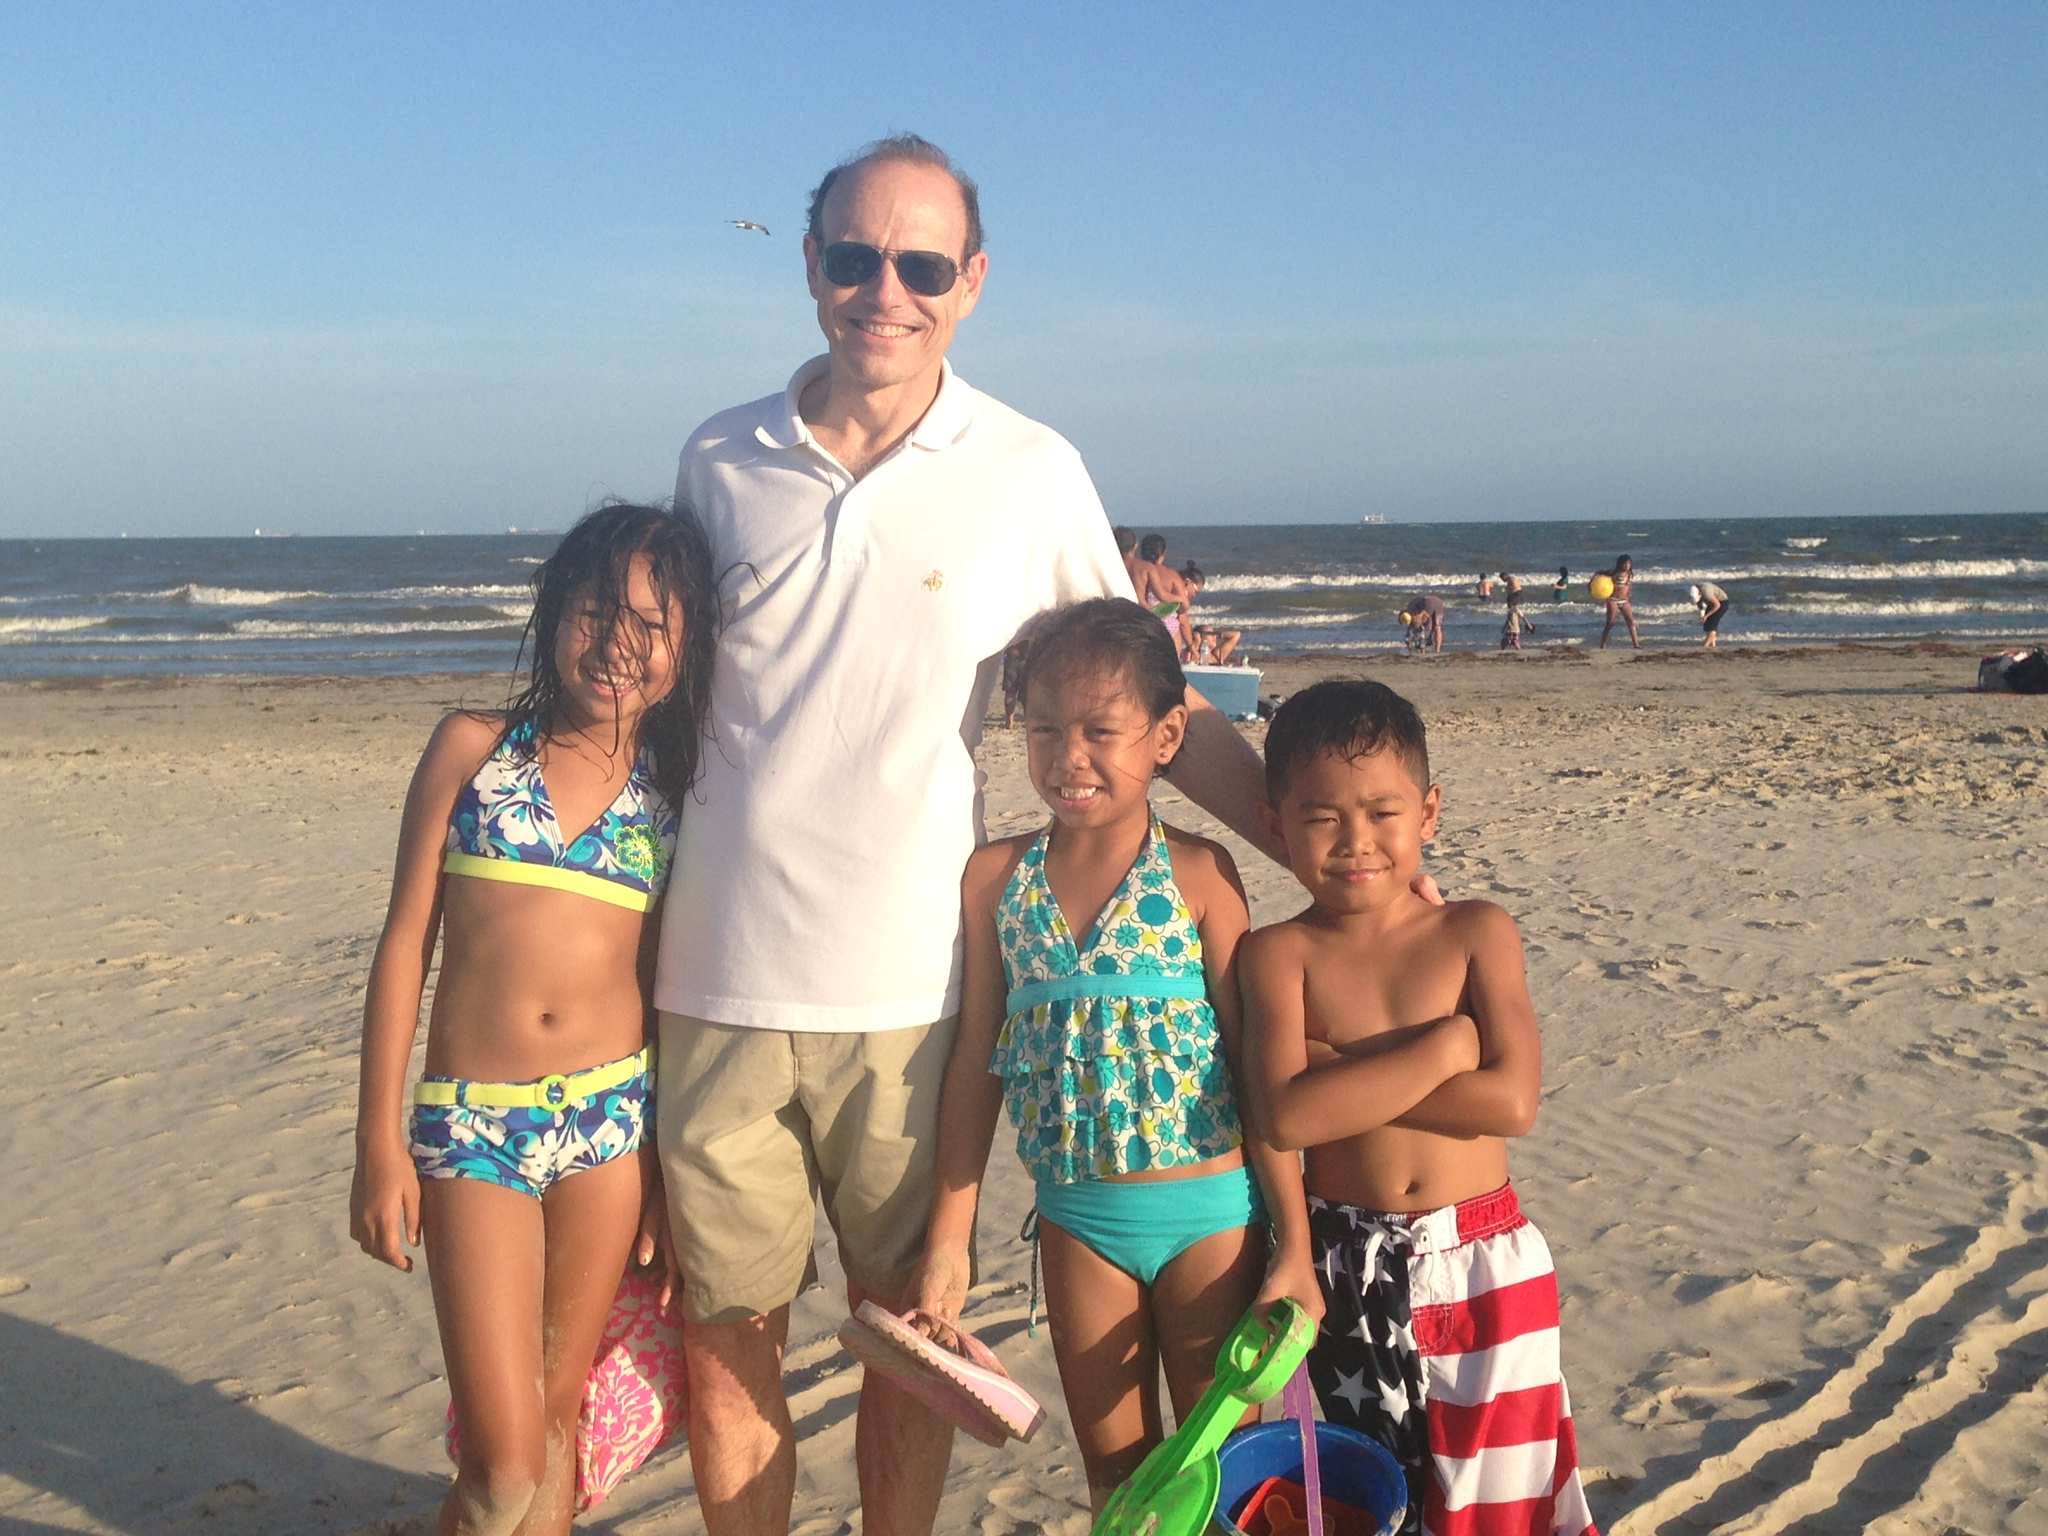 Galveston Beach, 2013